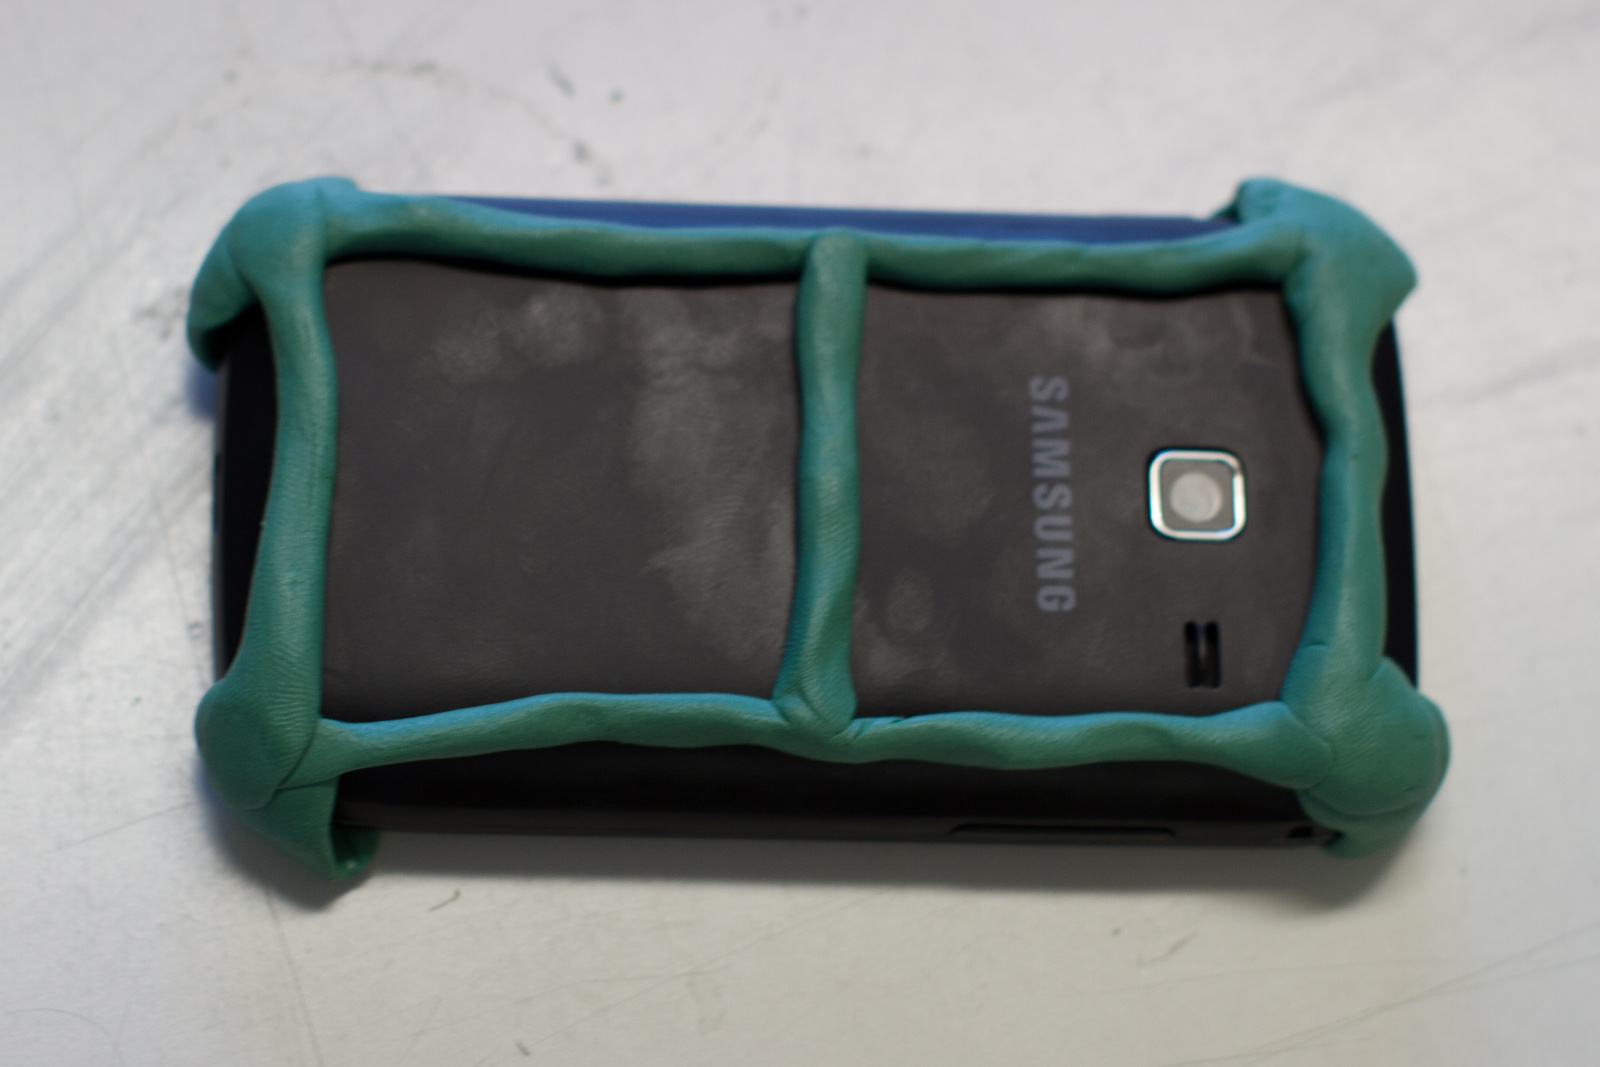 Picture of Cellphone Protection With SUGRU